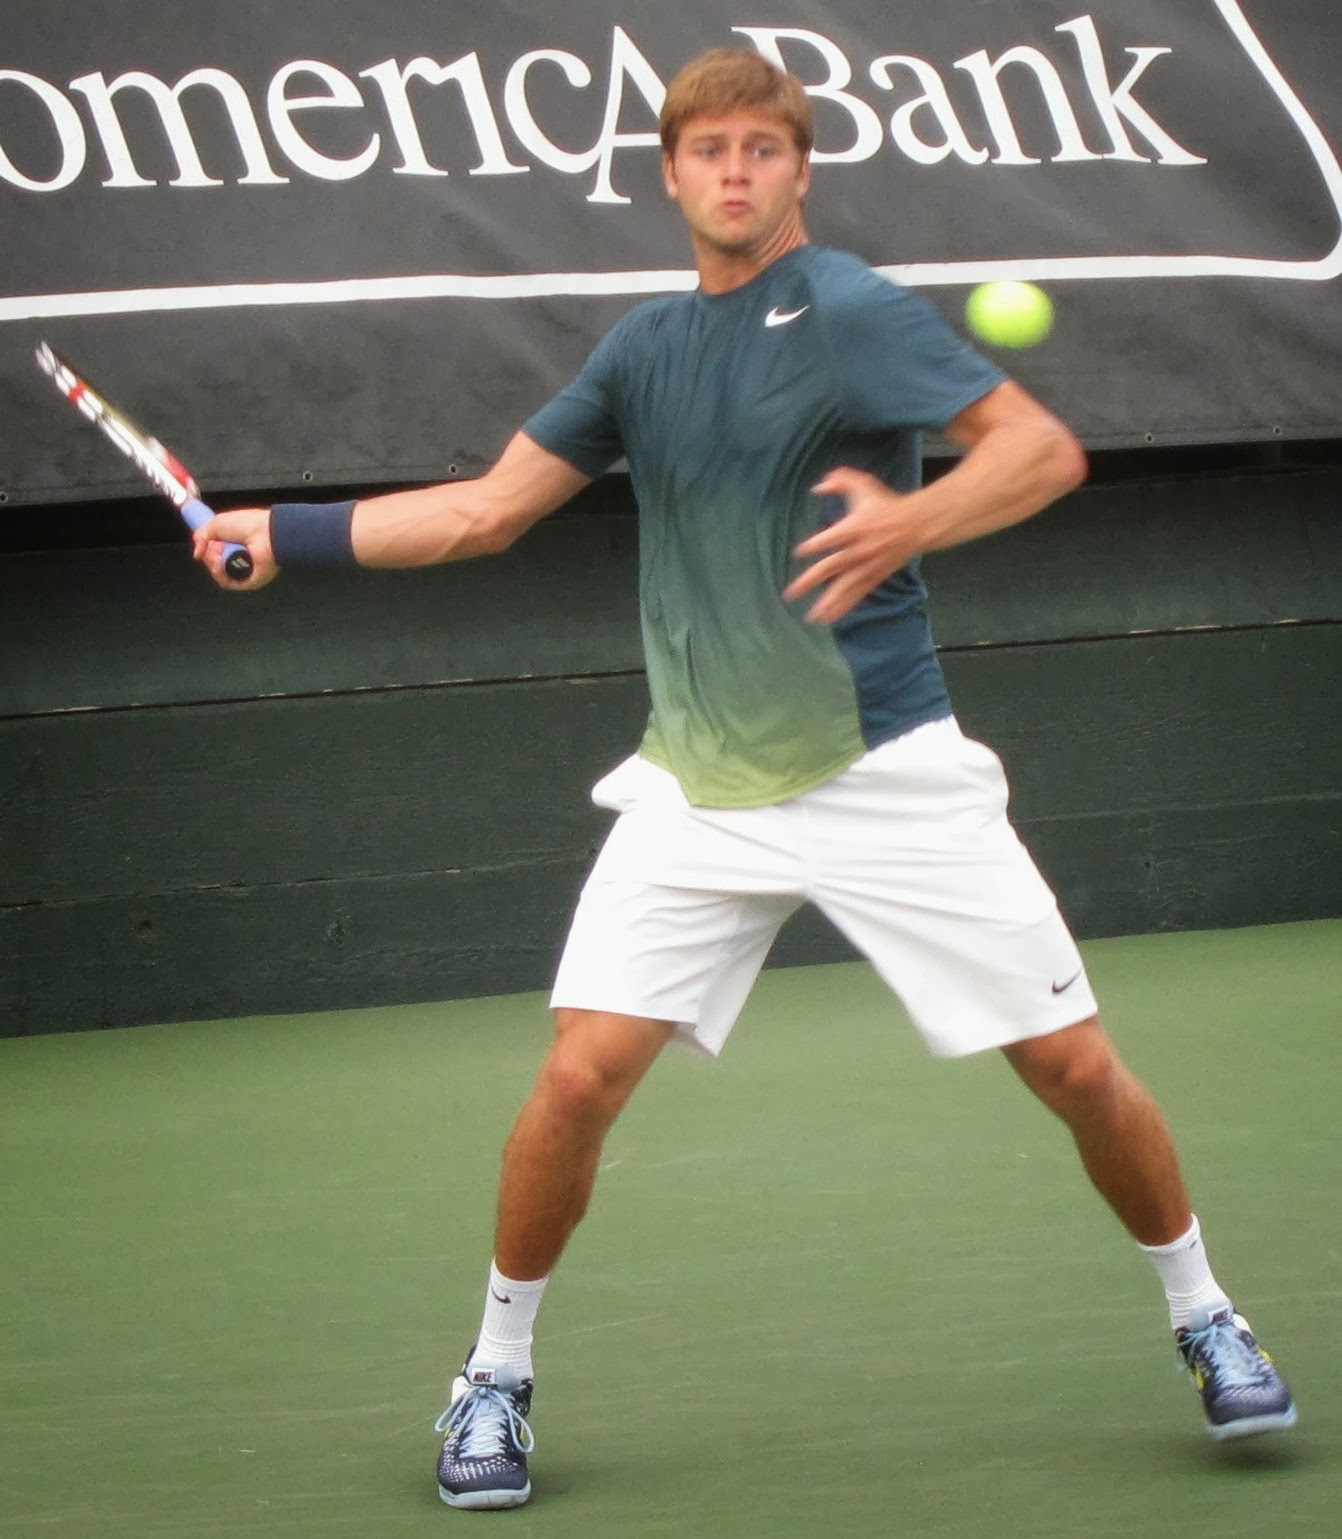 Donaldson, 17, upstages Harrison in Napa Challenger